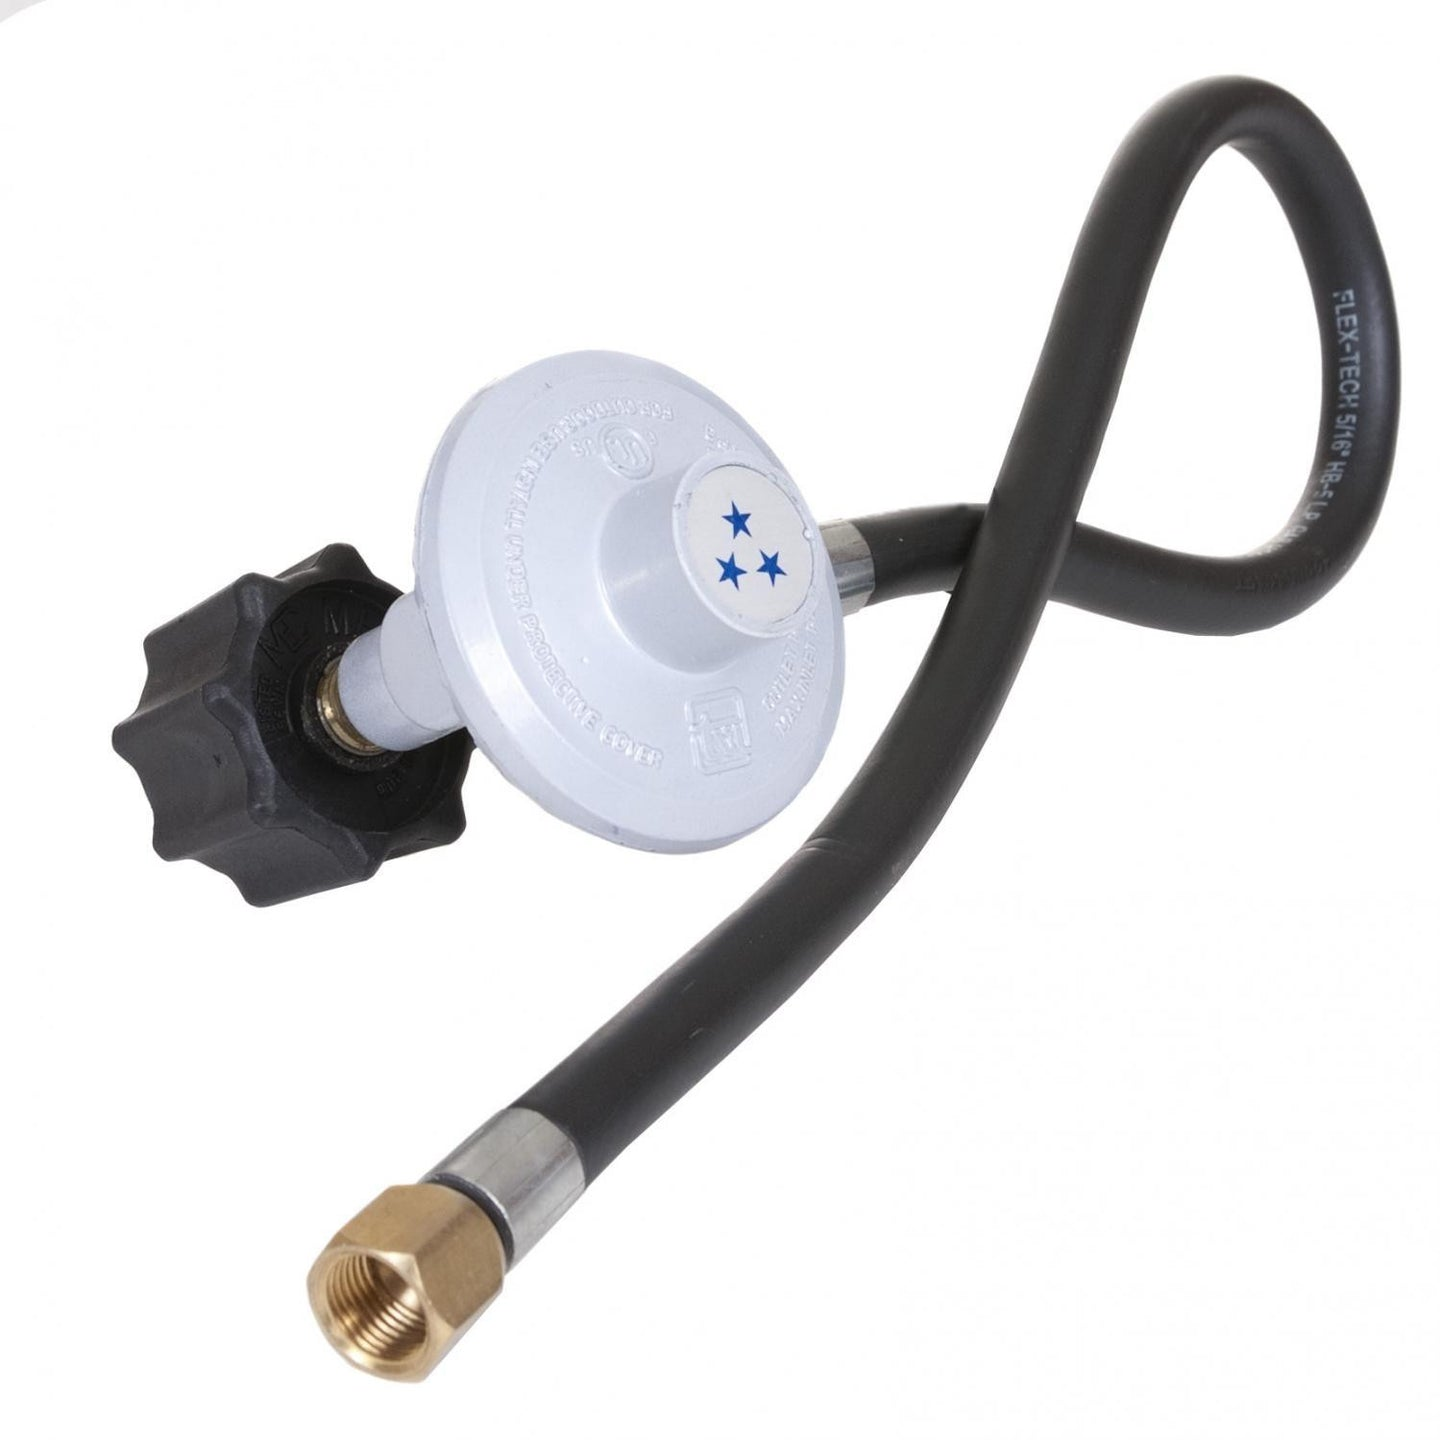 Blaze Propane Low Pressure Hose And Regulator With Connector - BLZ-ULV-LPKIT - The Garden District